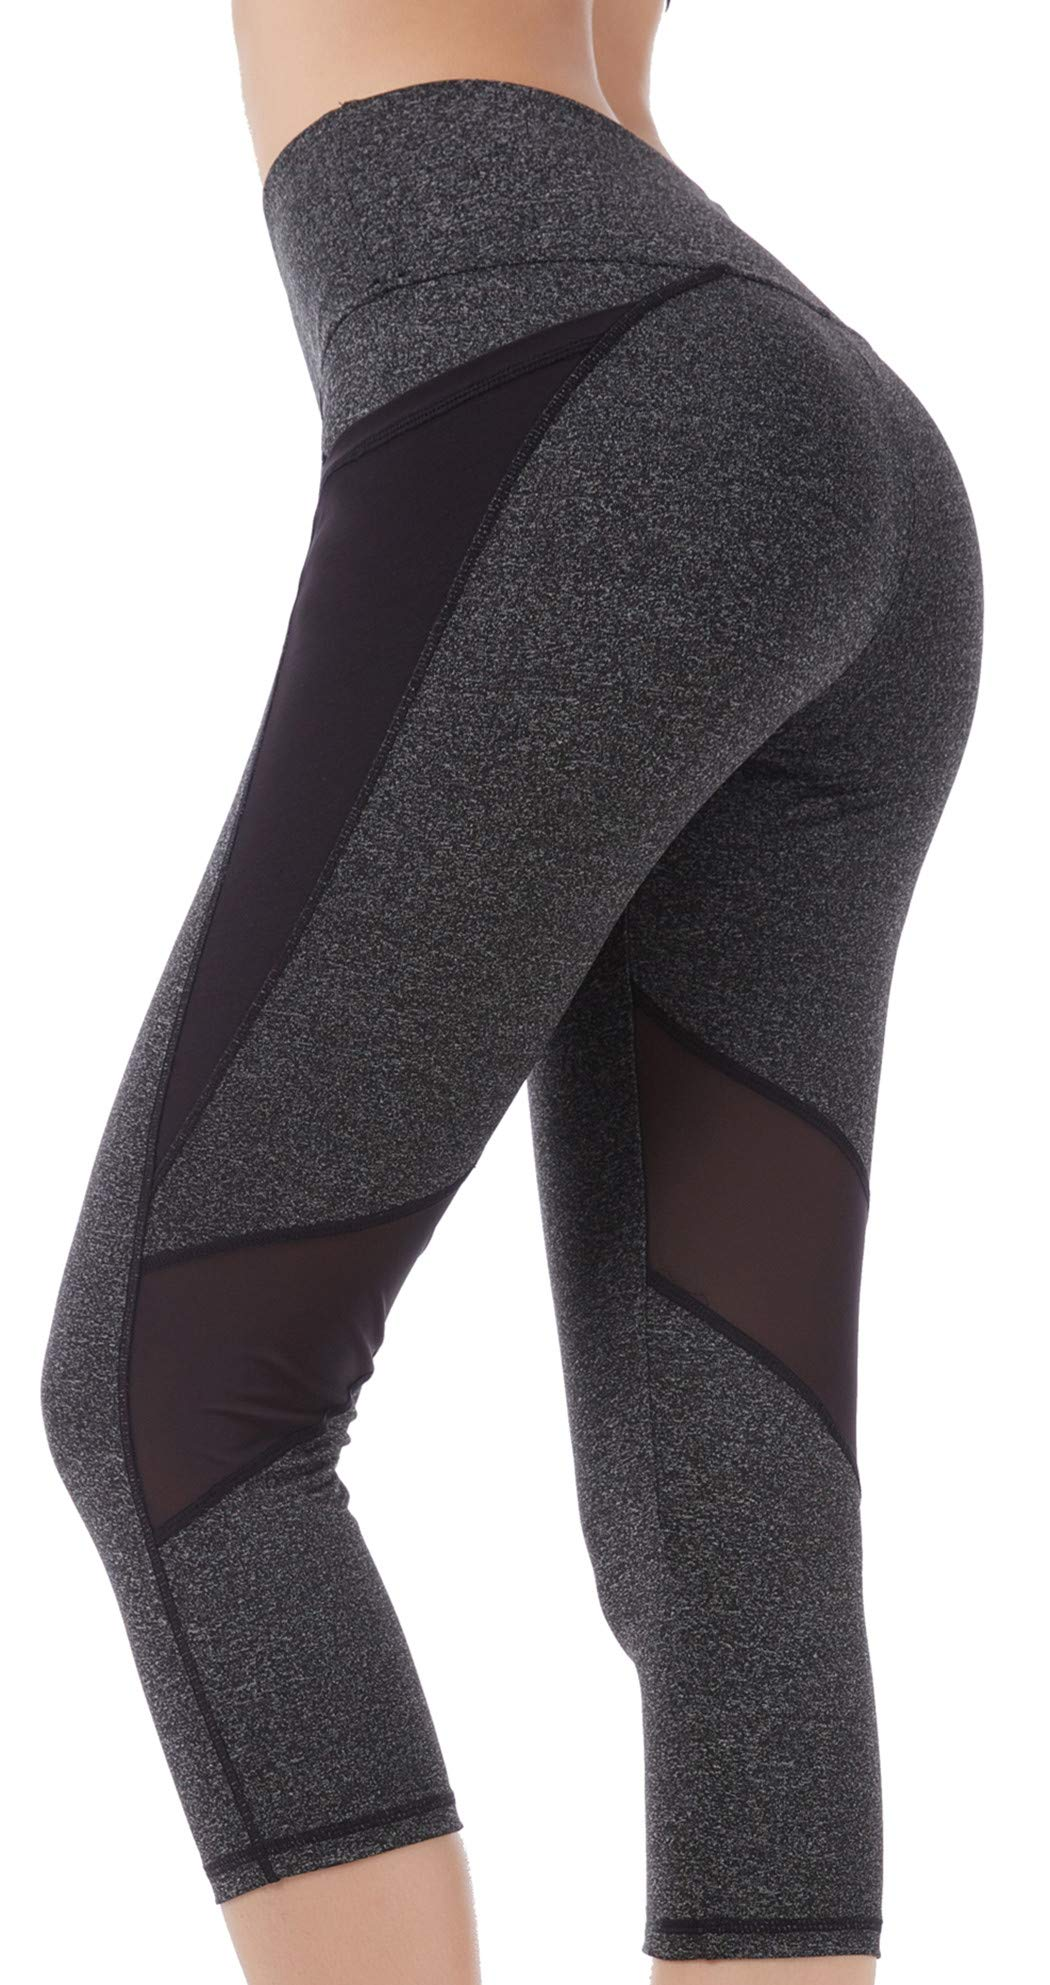 Picotee Women's Yoga Pants Workout Capri Leggings Running Tights w Side Pocket (Small, Grey-Mesh)